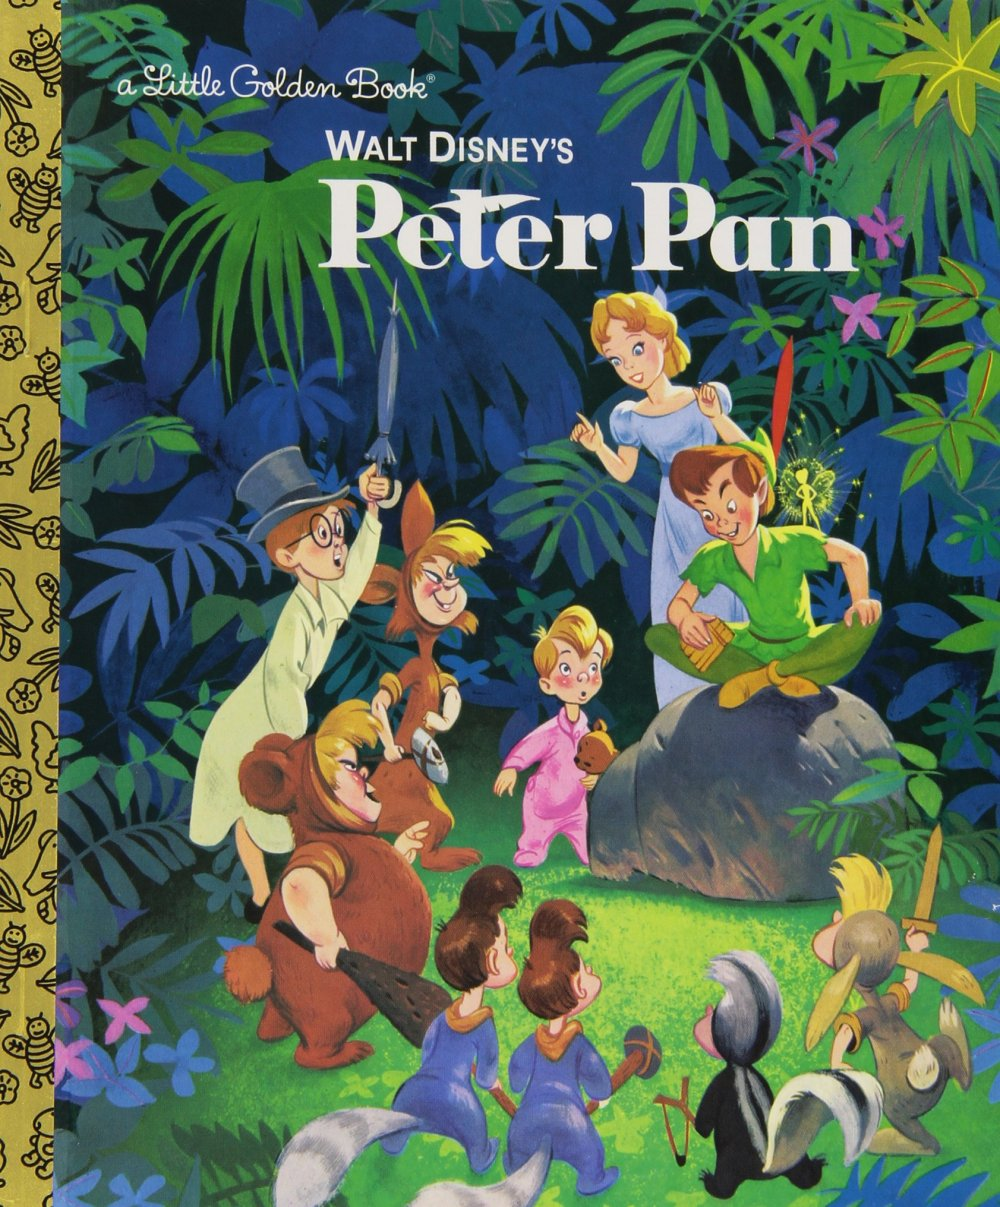 Walt Disney's Peter Pan (Disney Peter Pan) (Little Golden Book)